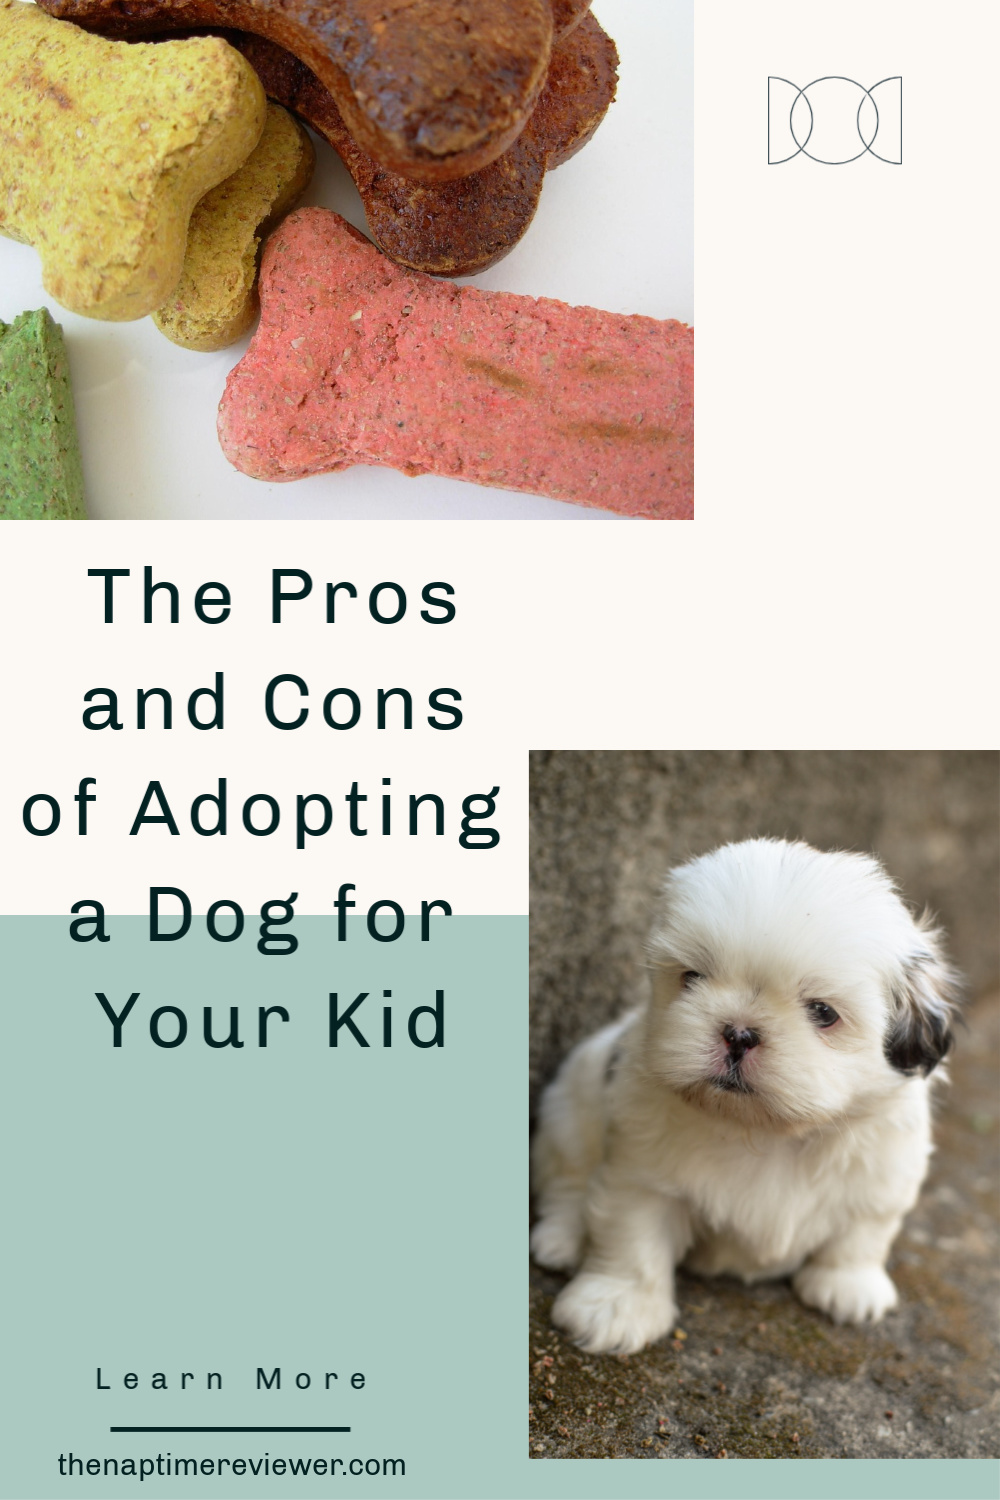 The Pros and Cons of Adopting a Dog for Your Kids